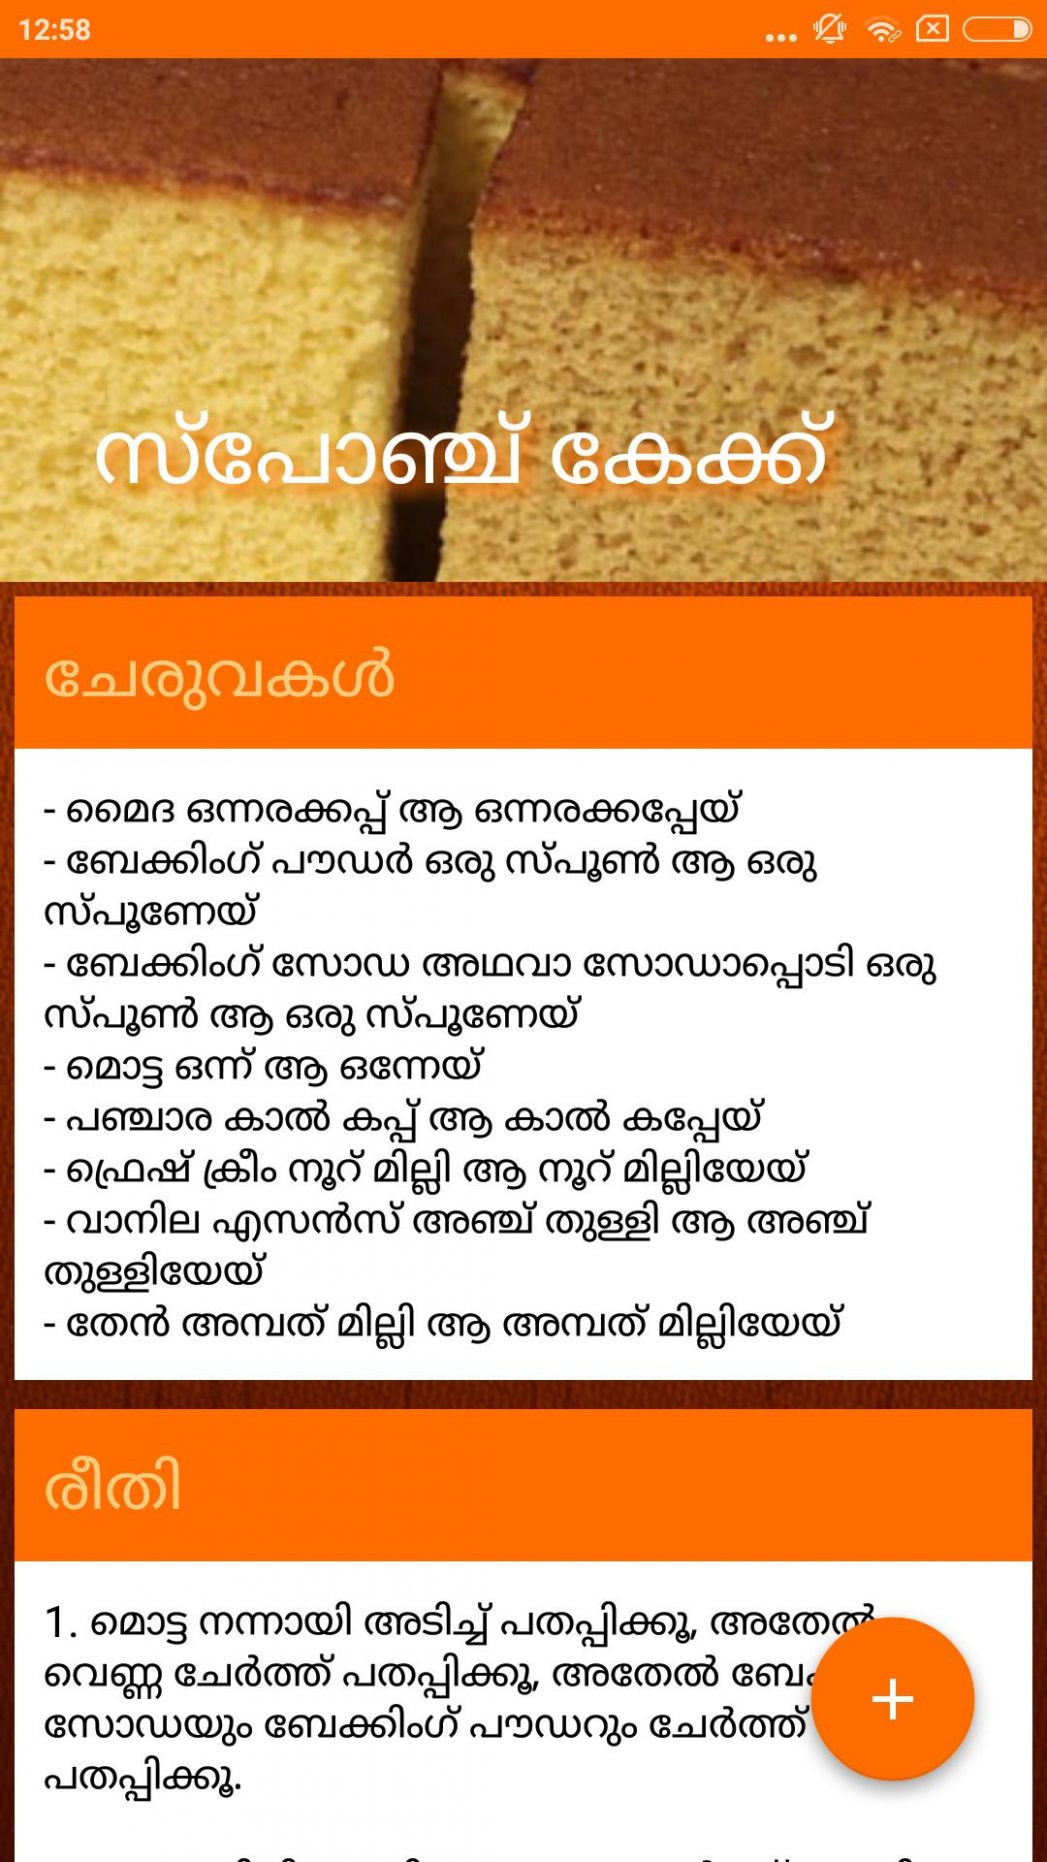 Malayalam Cake Recipes for Android - APK Download